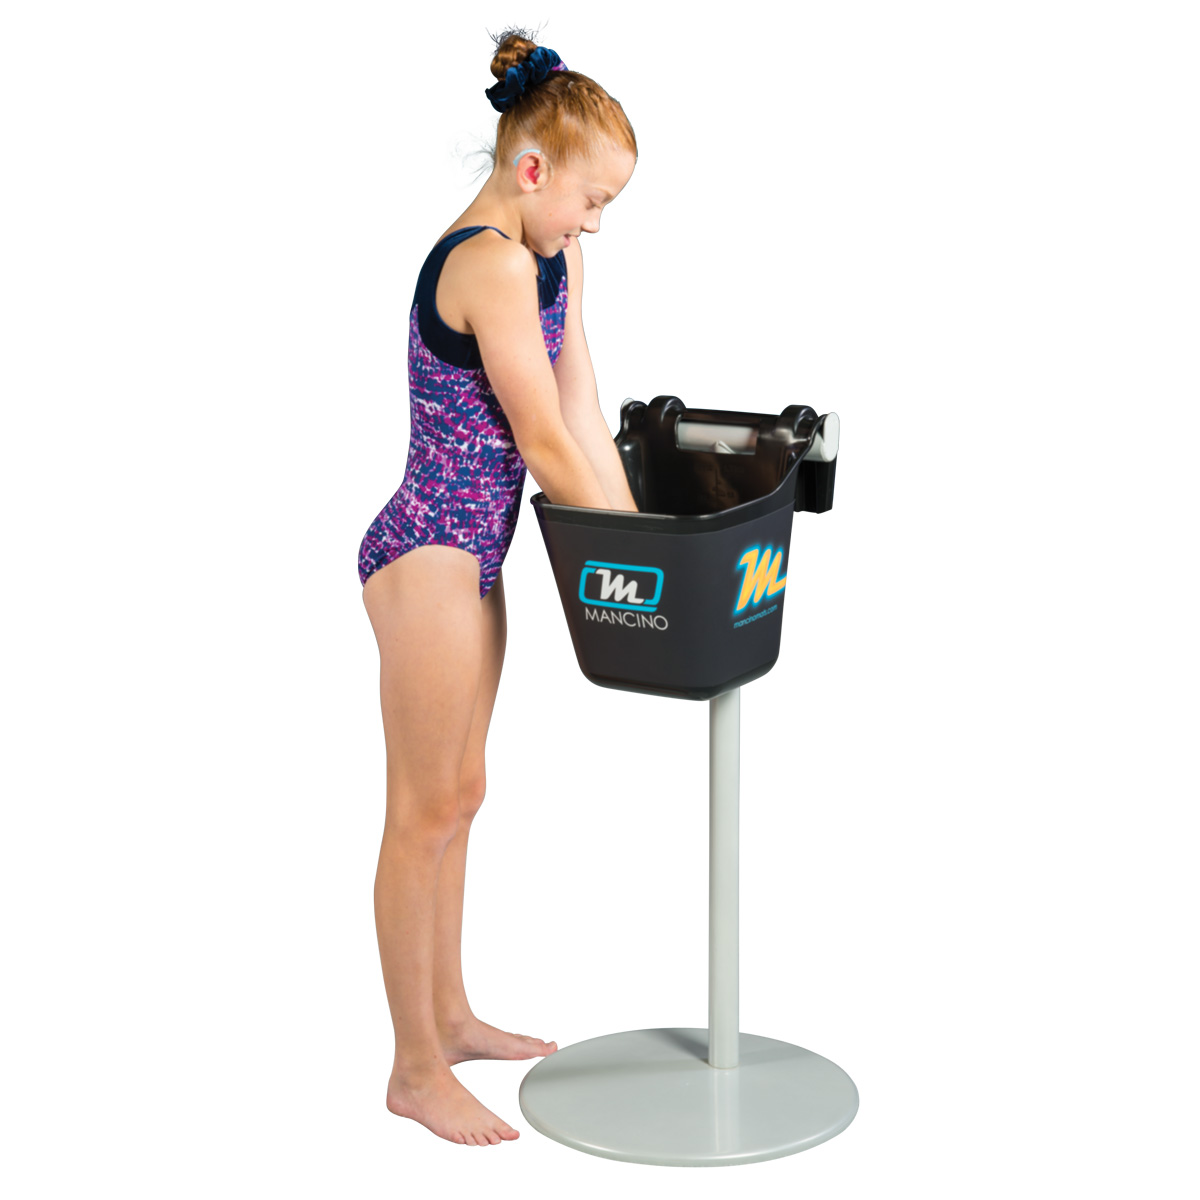 gymnast chalking up hands at chalk stand